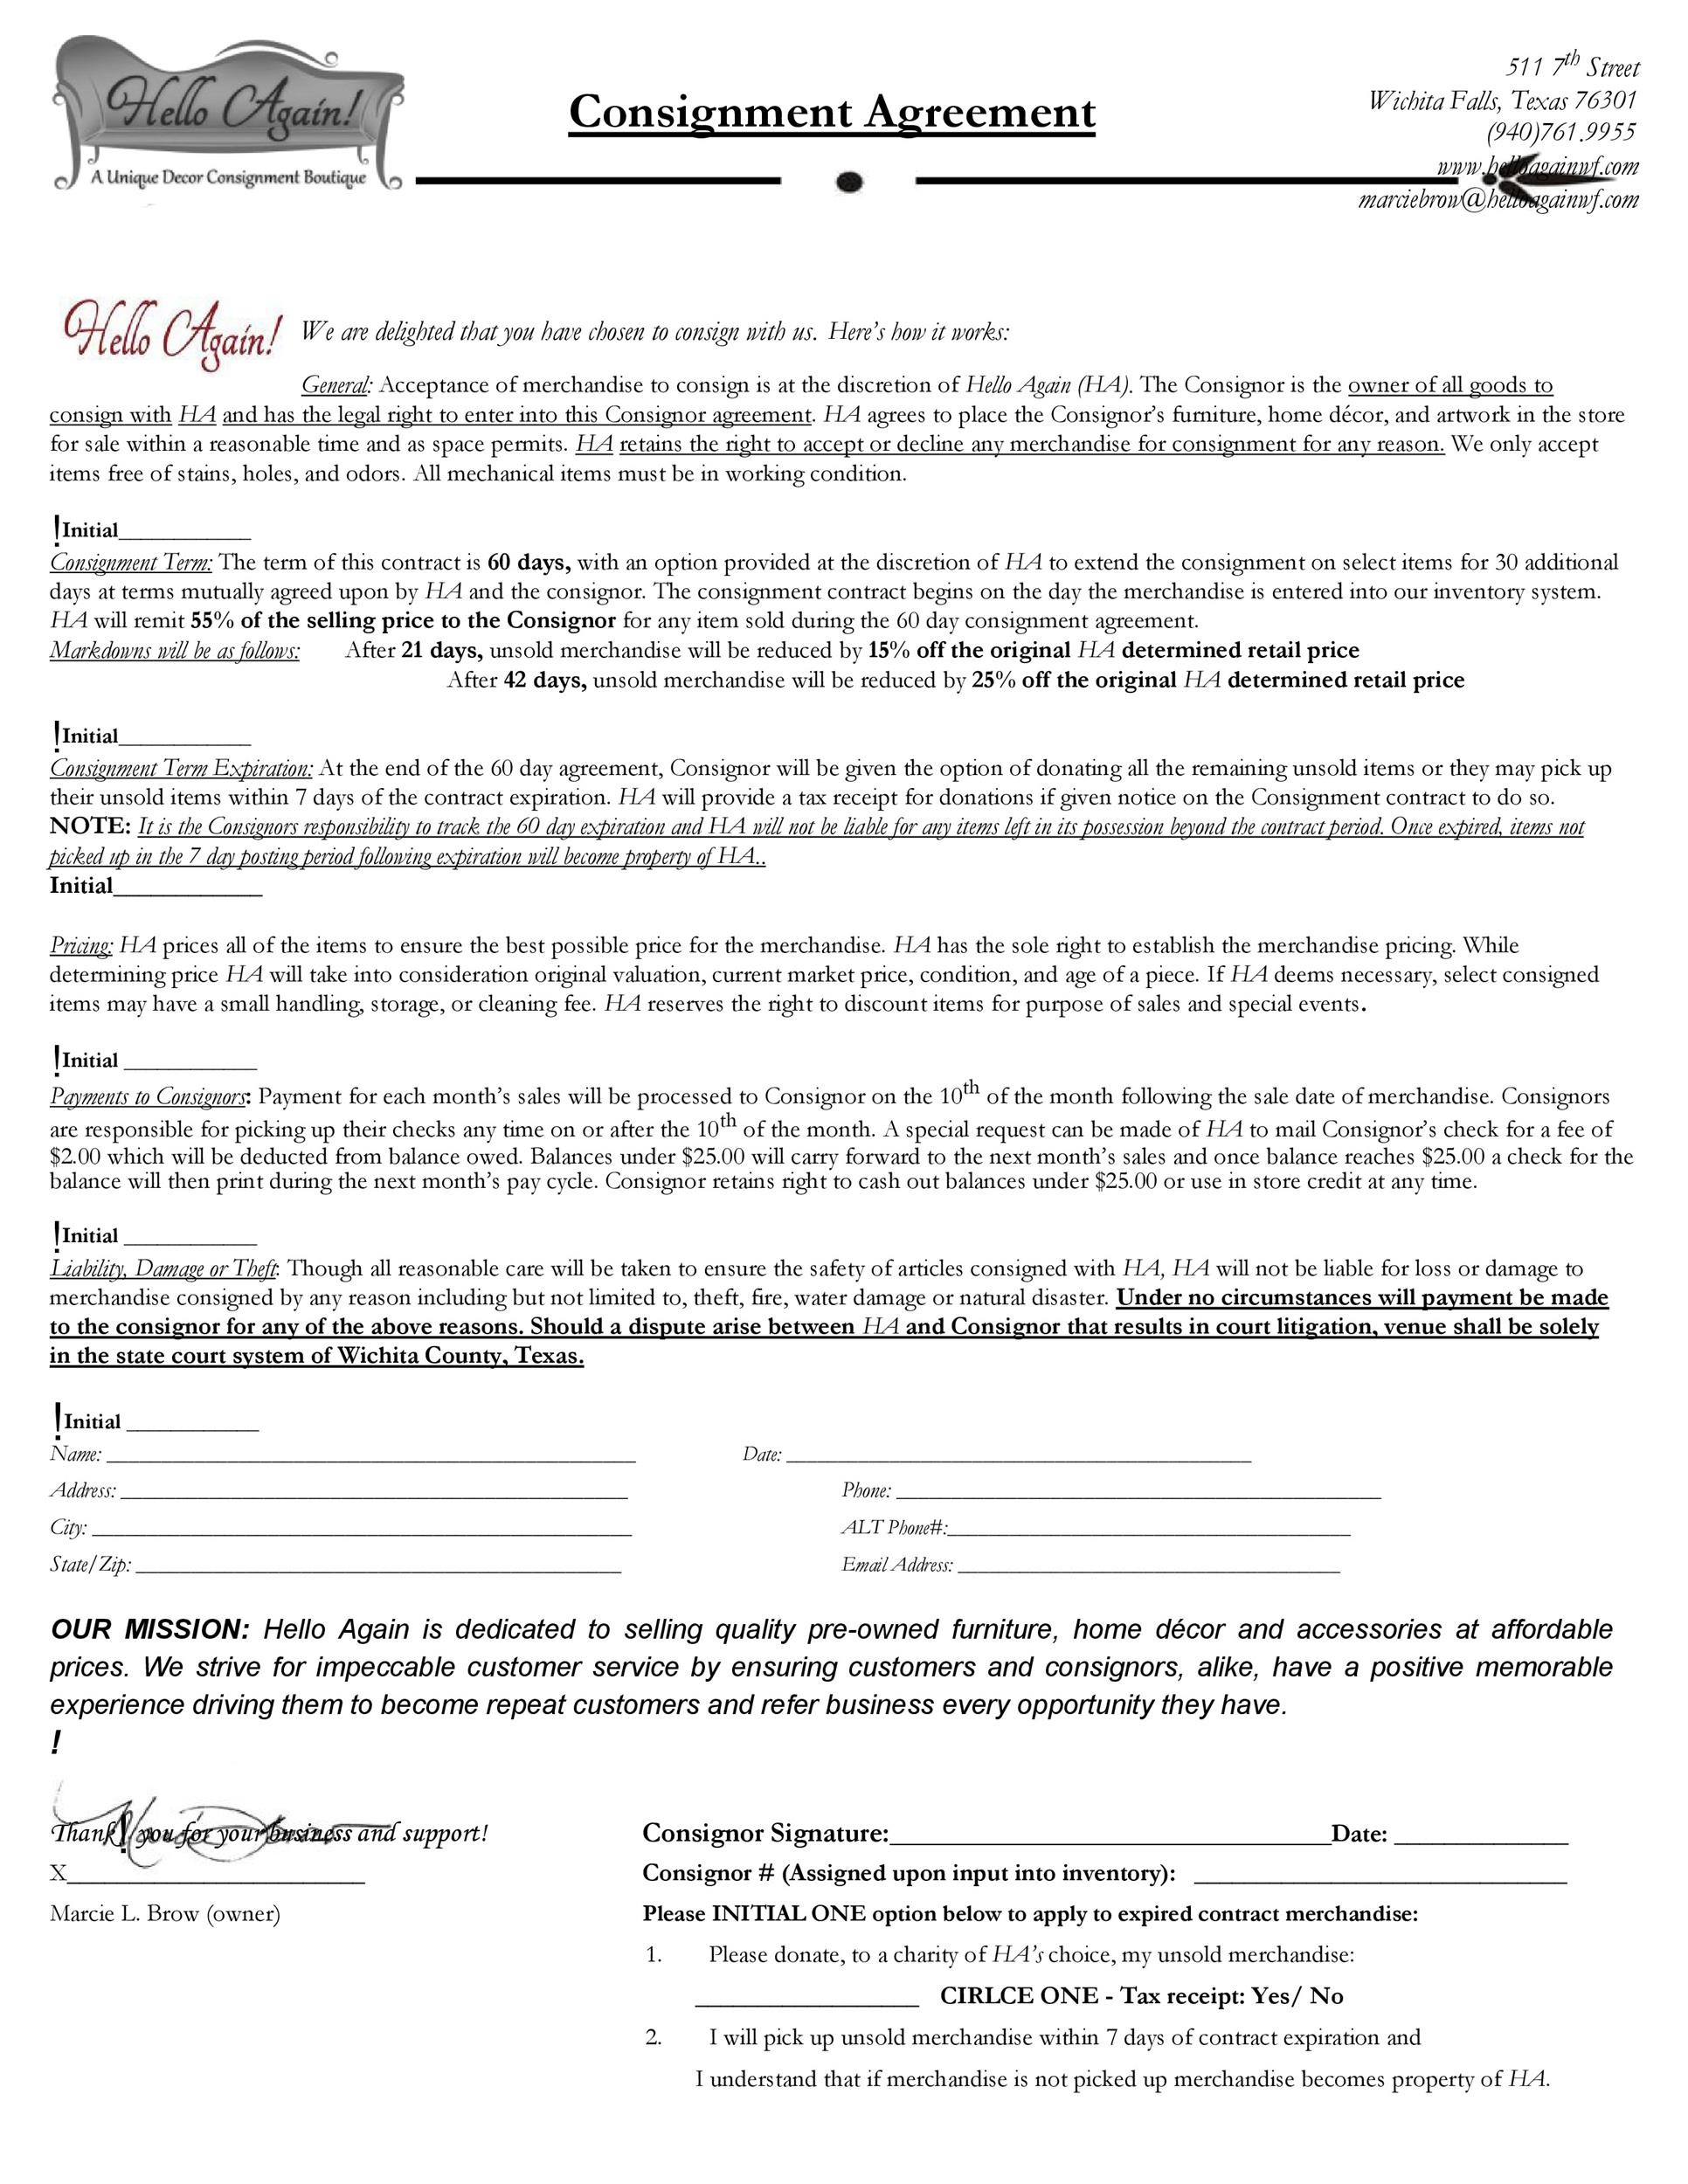 Best Consignment Agreement Templates  Forms  Template Lab